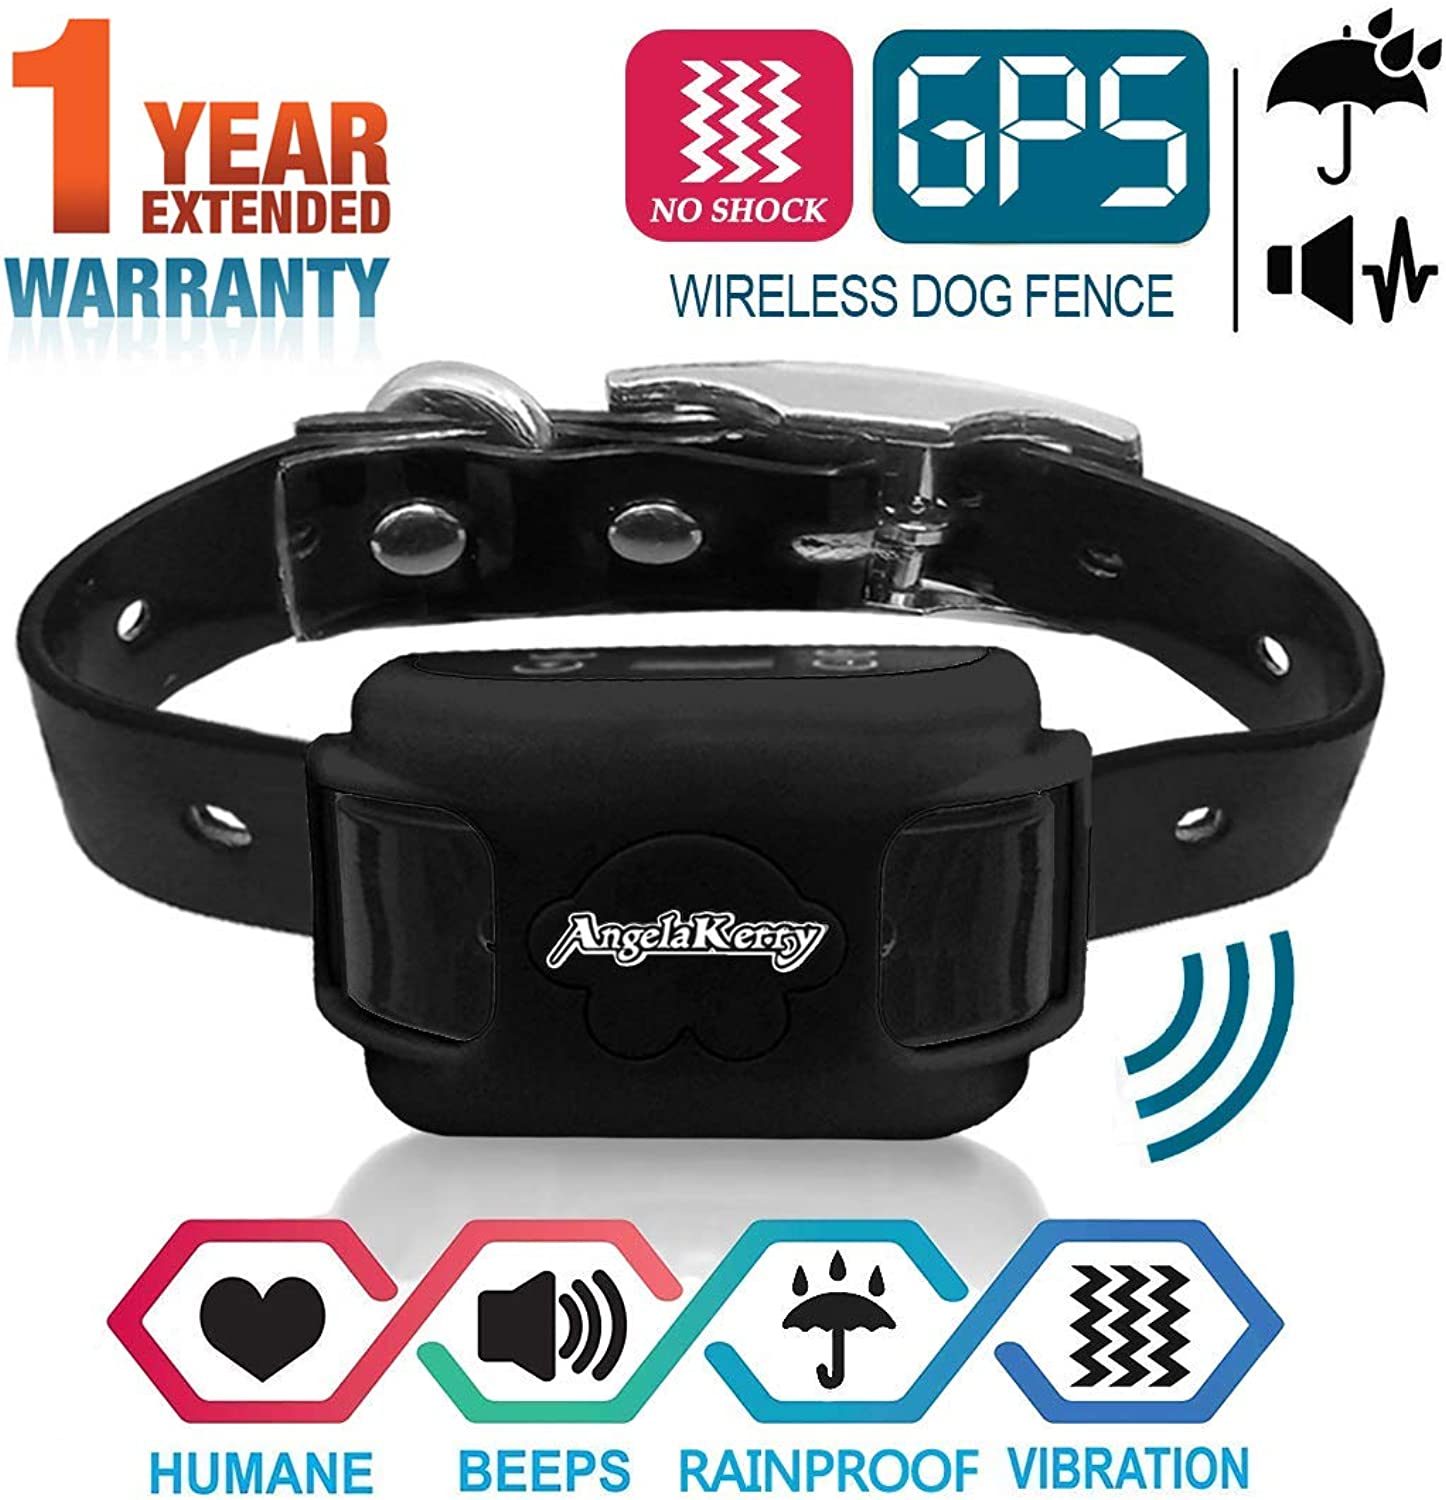 AngelaKerry Wireless Dog Fence System with GPS, NO Electric Shock, Outdoor Pet Containment System Rechargeable Waterproof Vibration Collar 850YD Remote for 15lbs120lbs Dogs